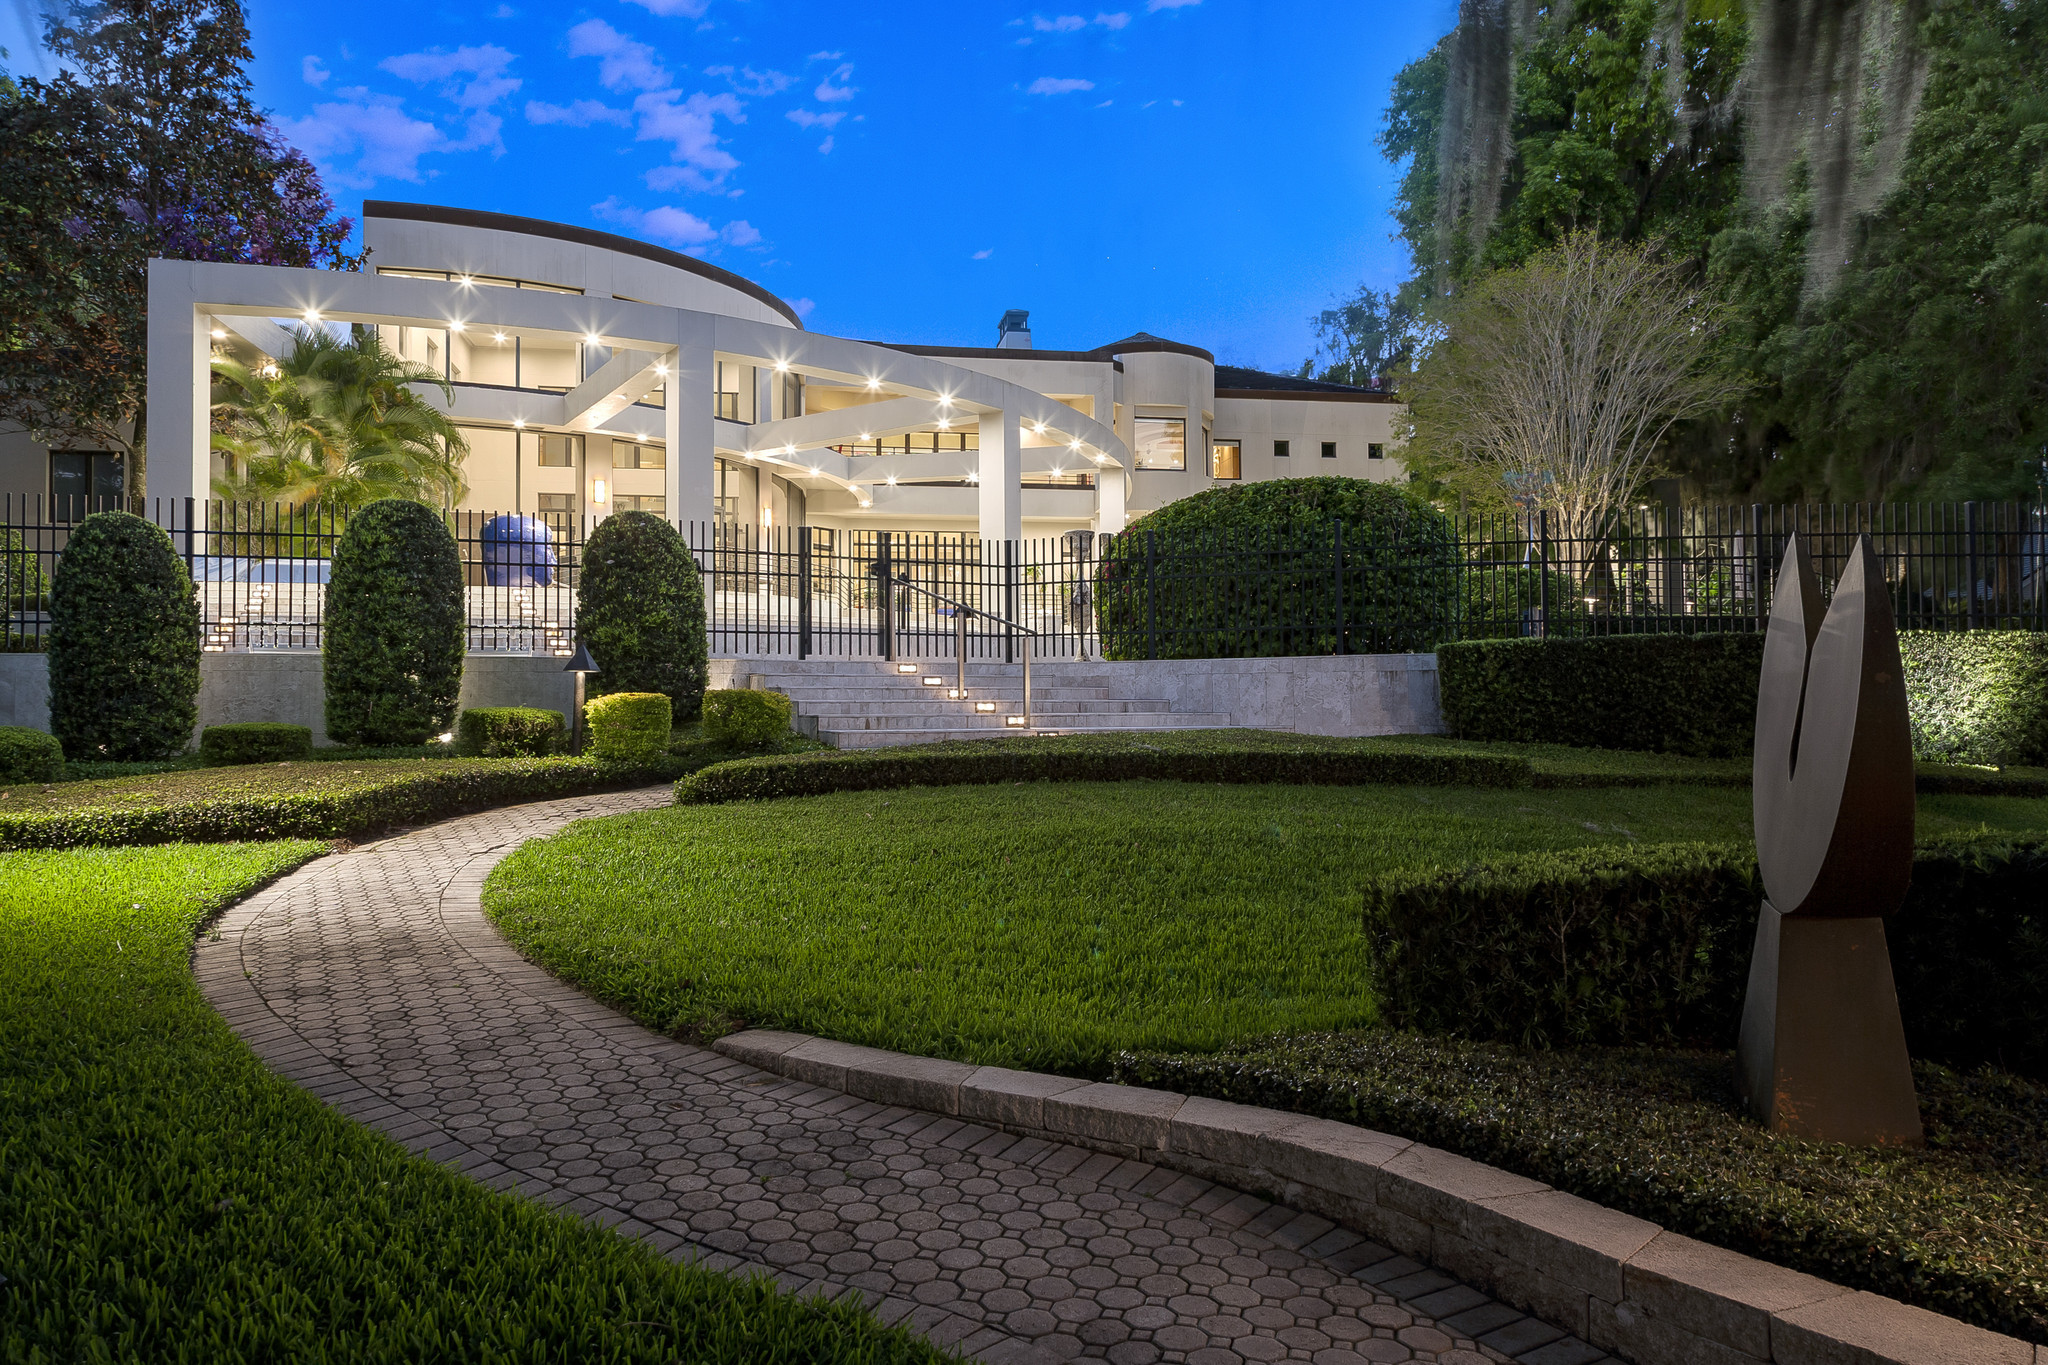 Former Horace Grant house for sale in Winter Park Orlando Sentinel